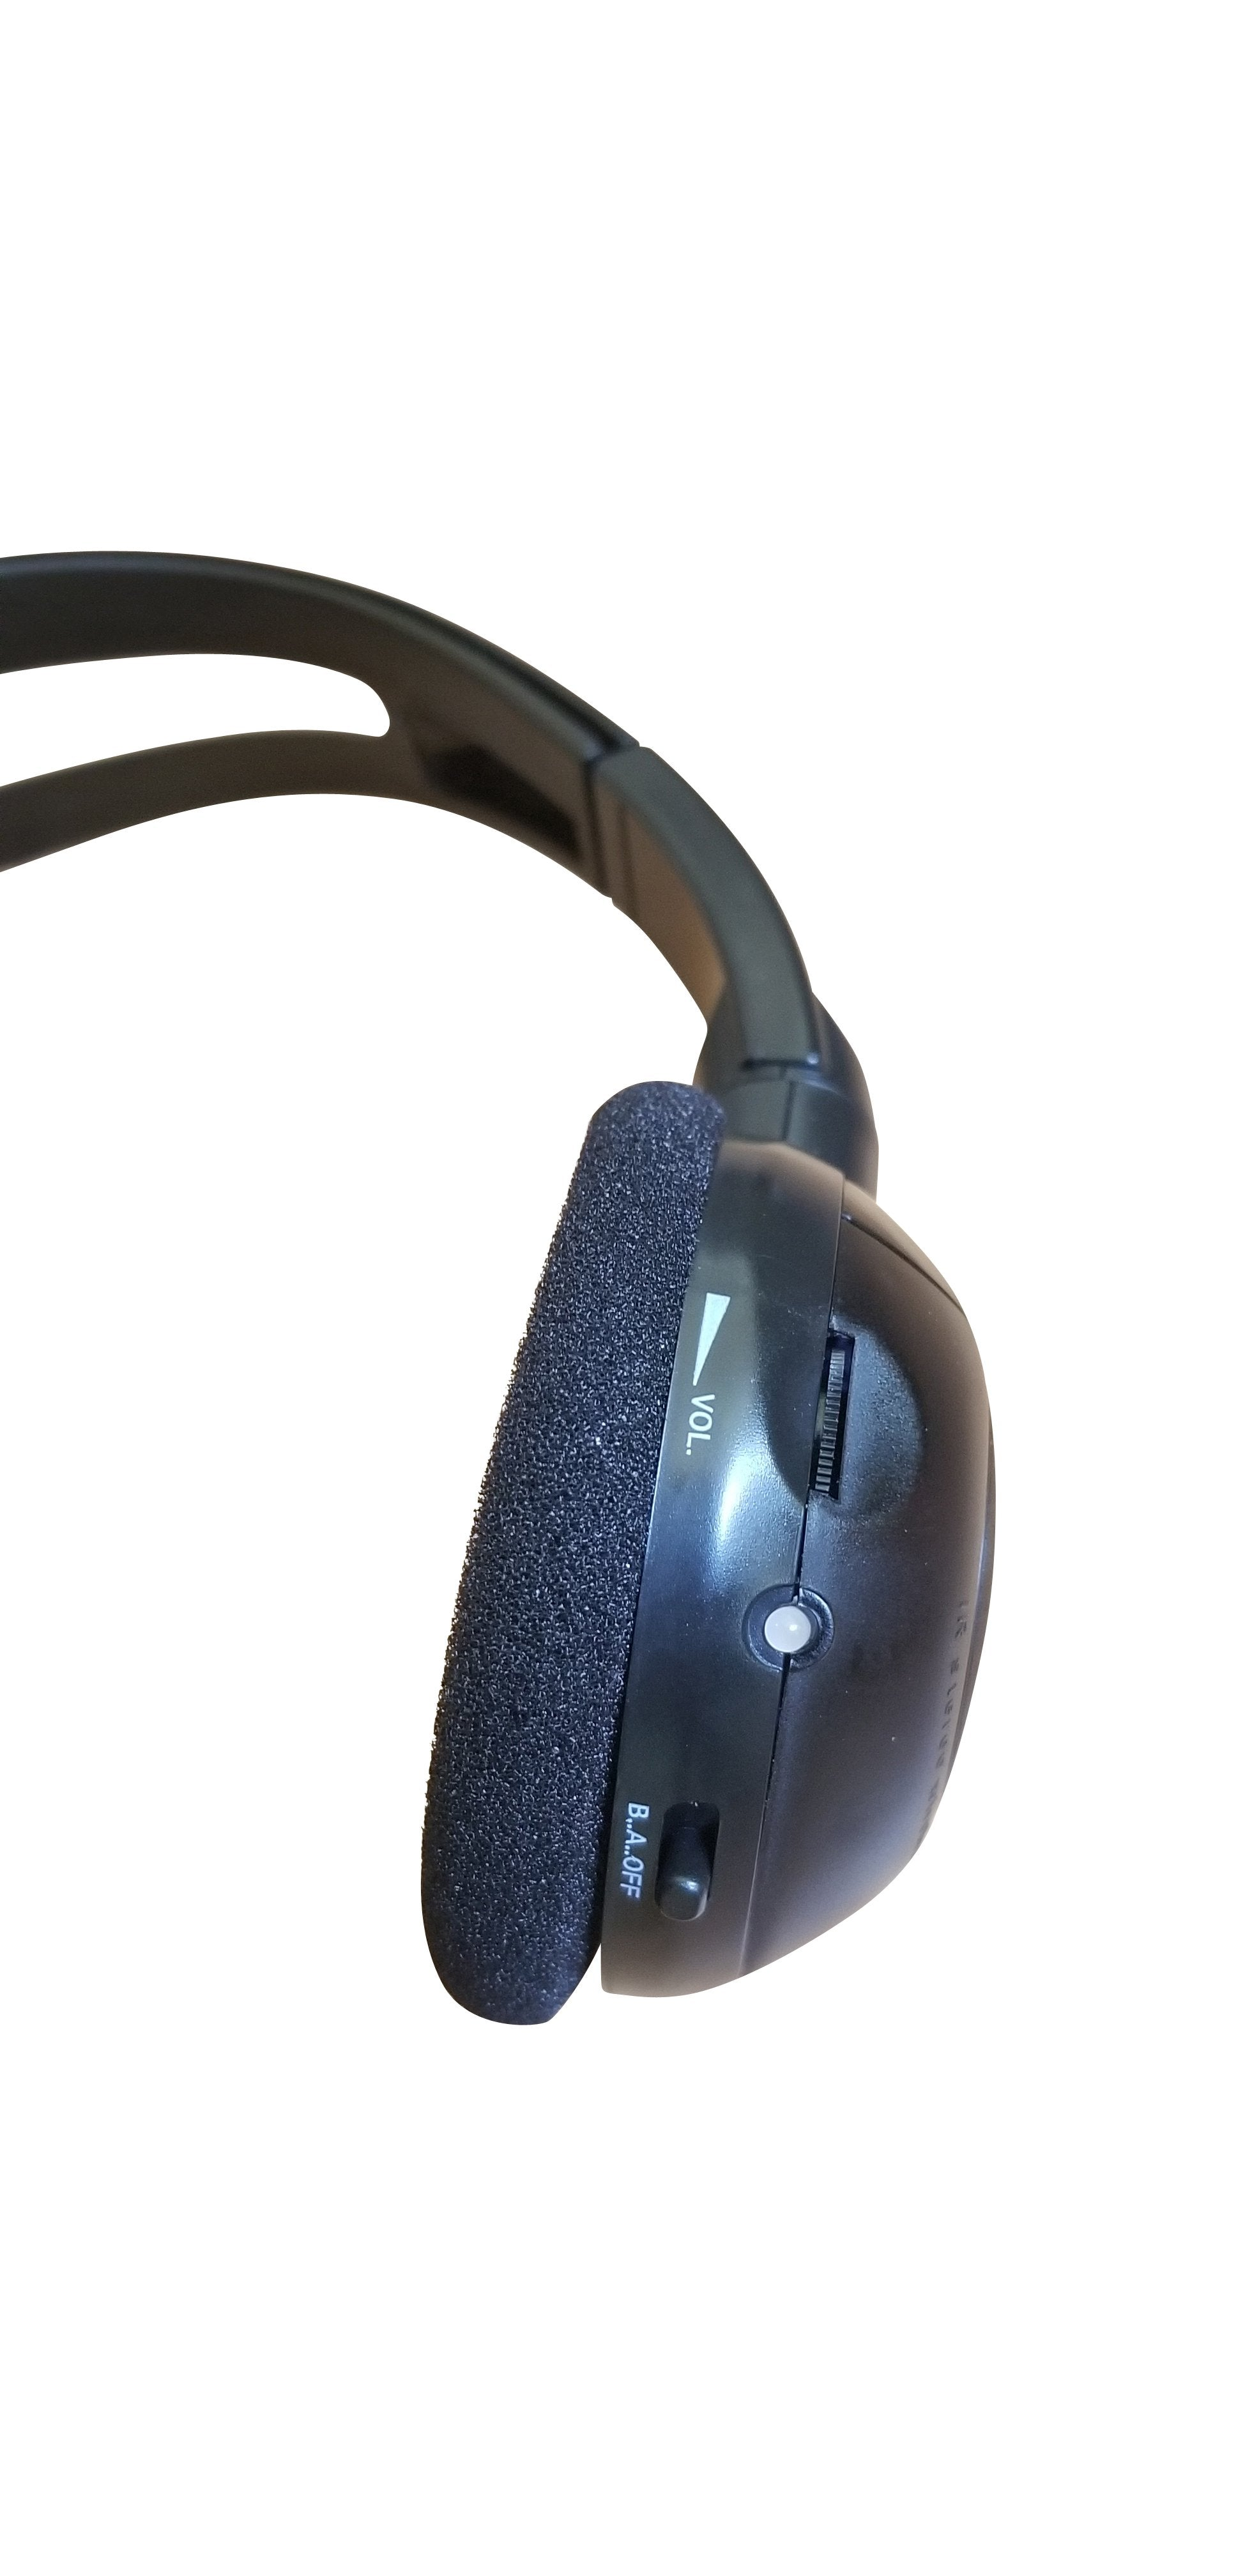 2013 Ford Edge Wireless DVD Headphone